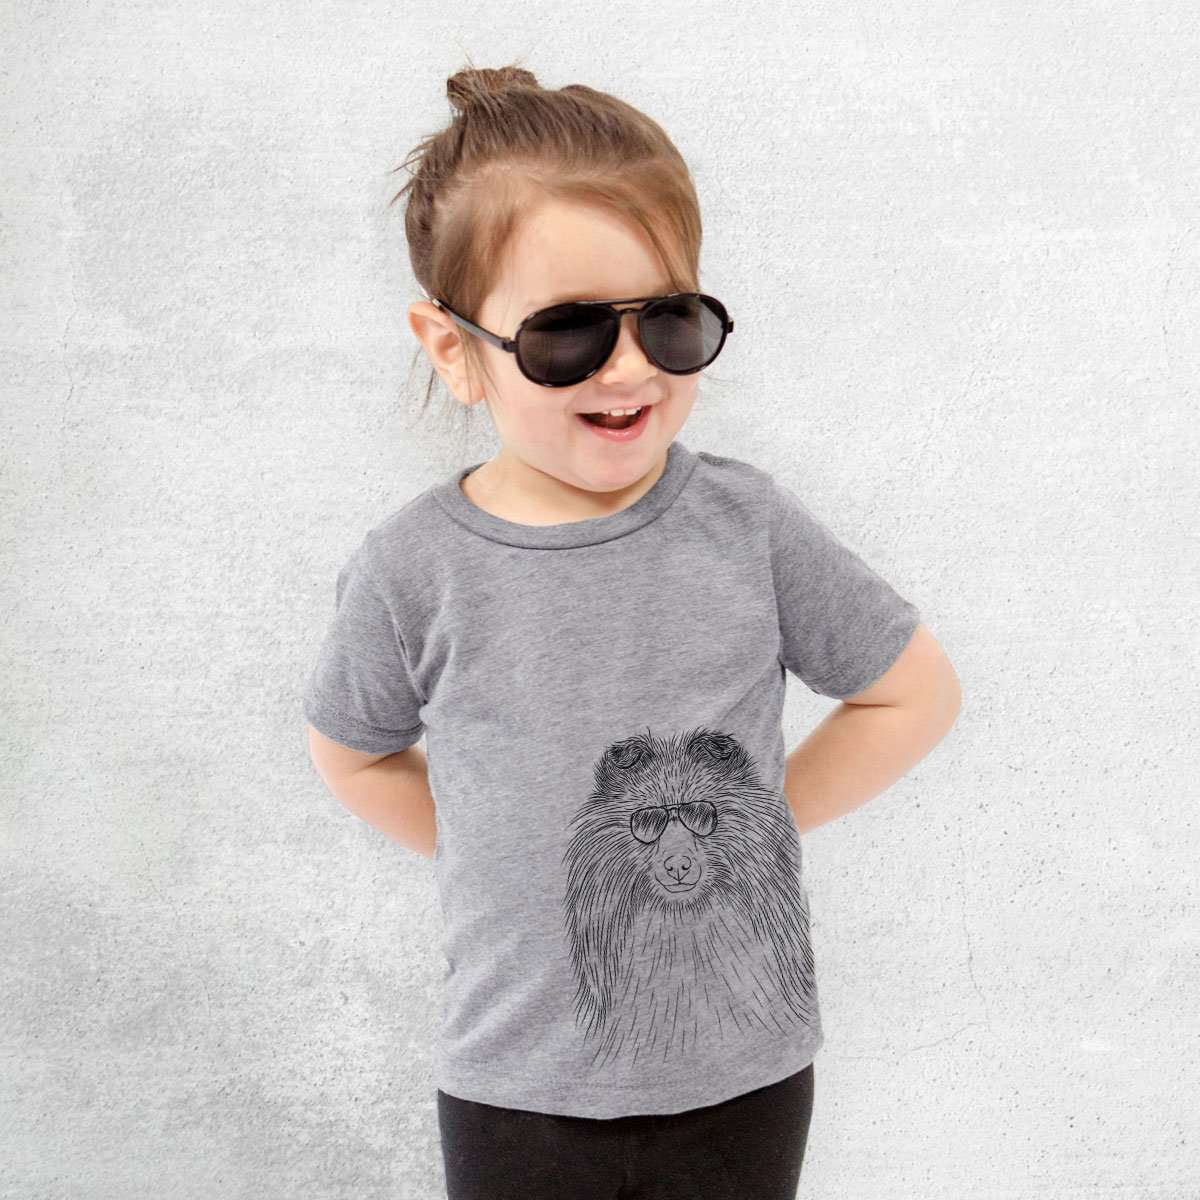 Moxie the Shetland Sheepdog - Kids/Youth/Toddler Shirt